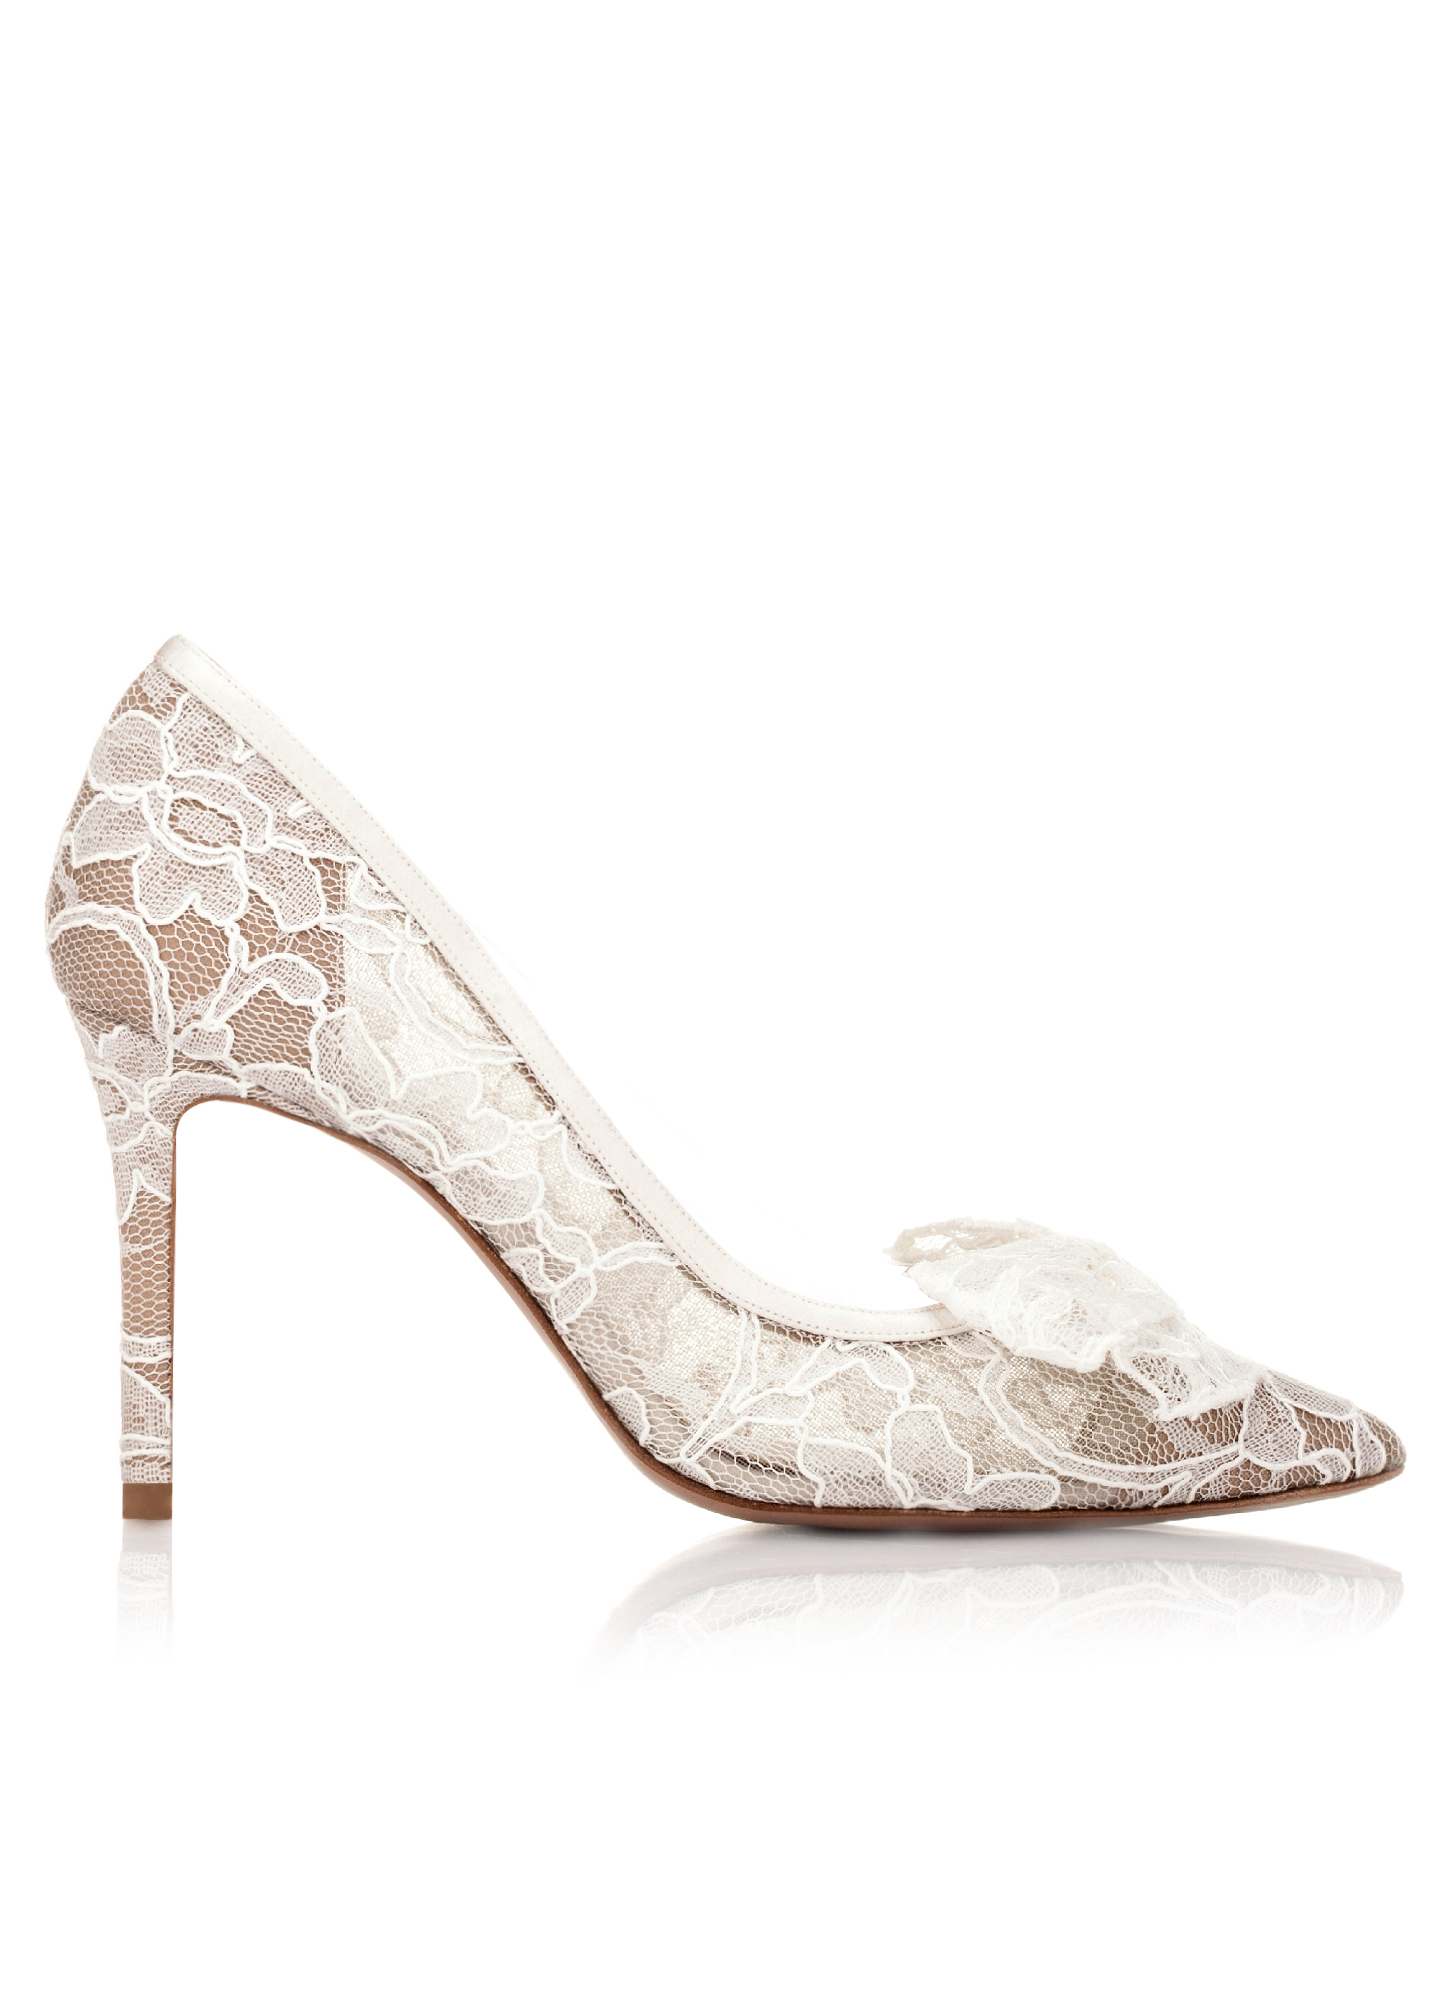 Pointy Toe Wedding Pumps In White Lace